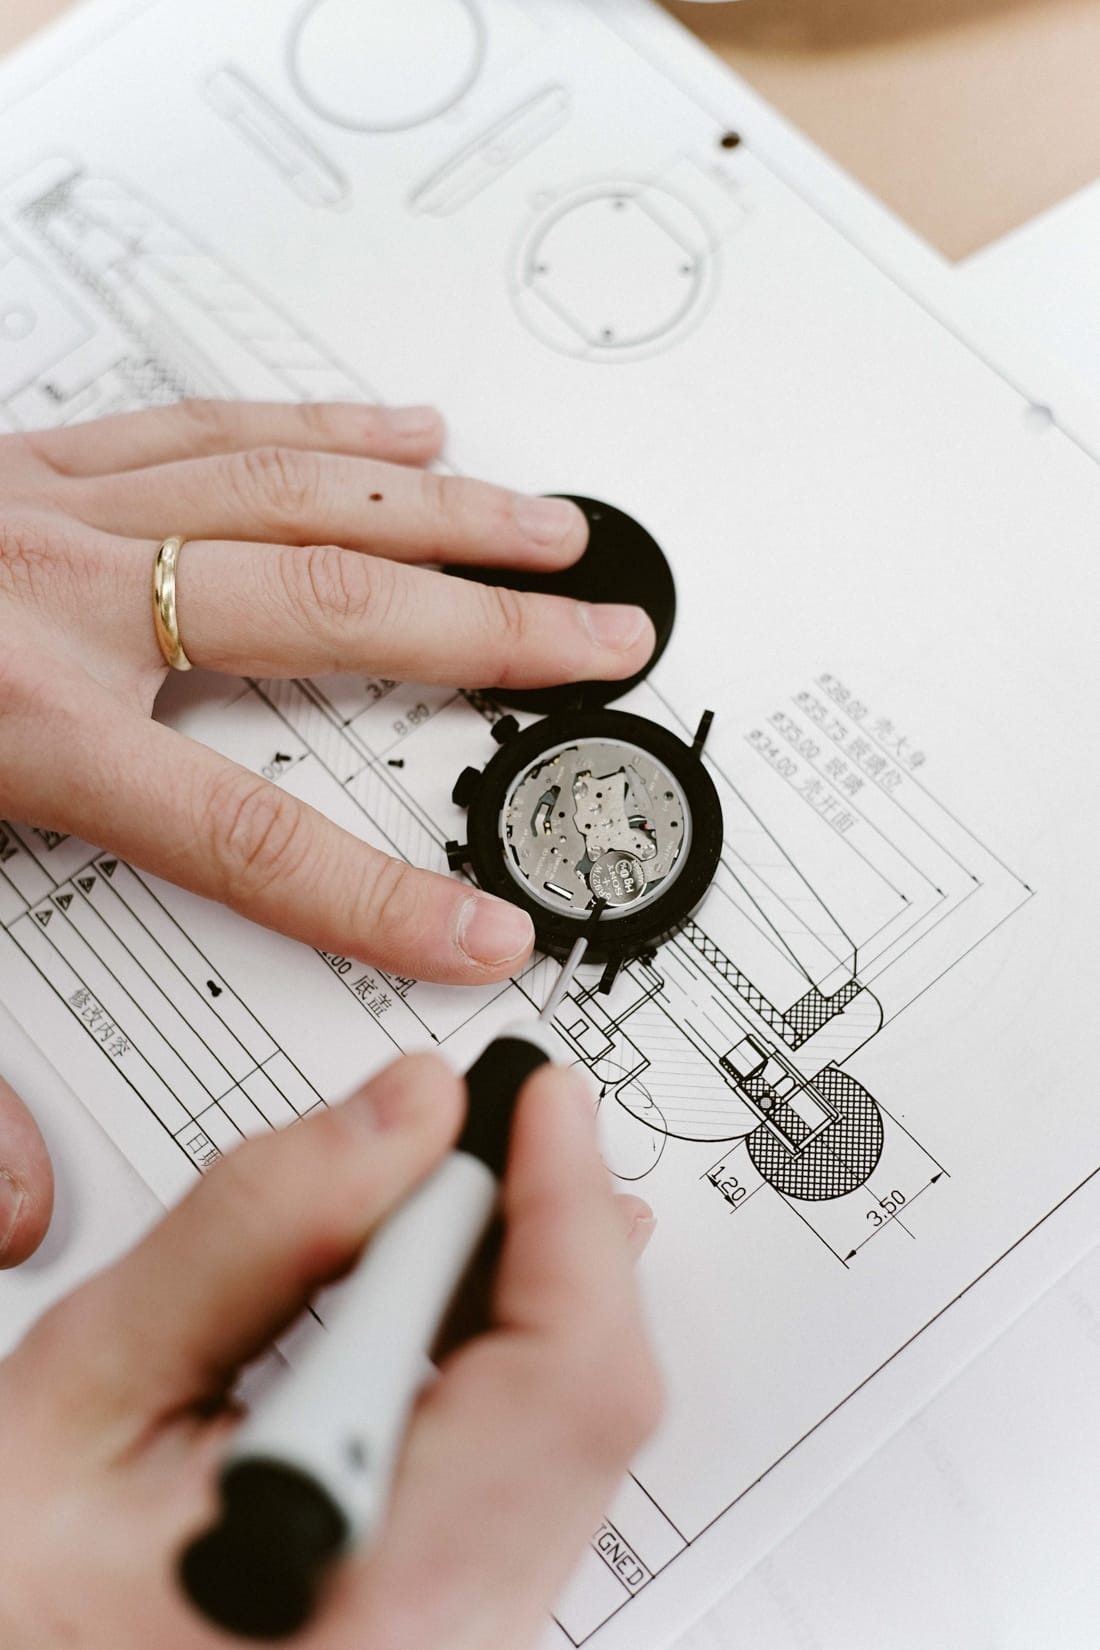 Details of an Aark Collective watch design